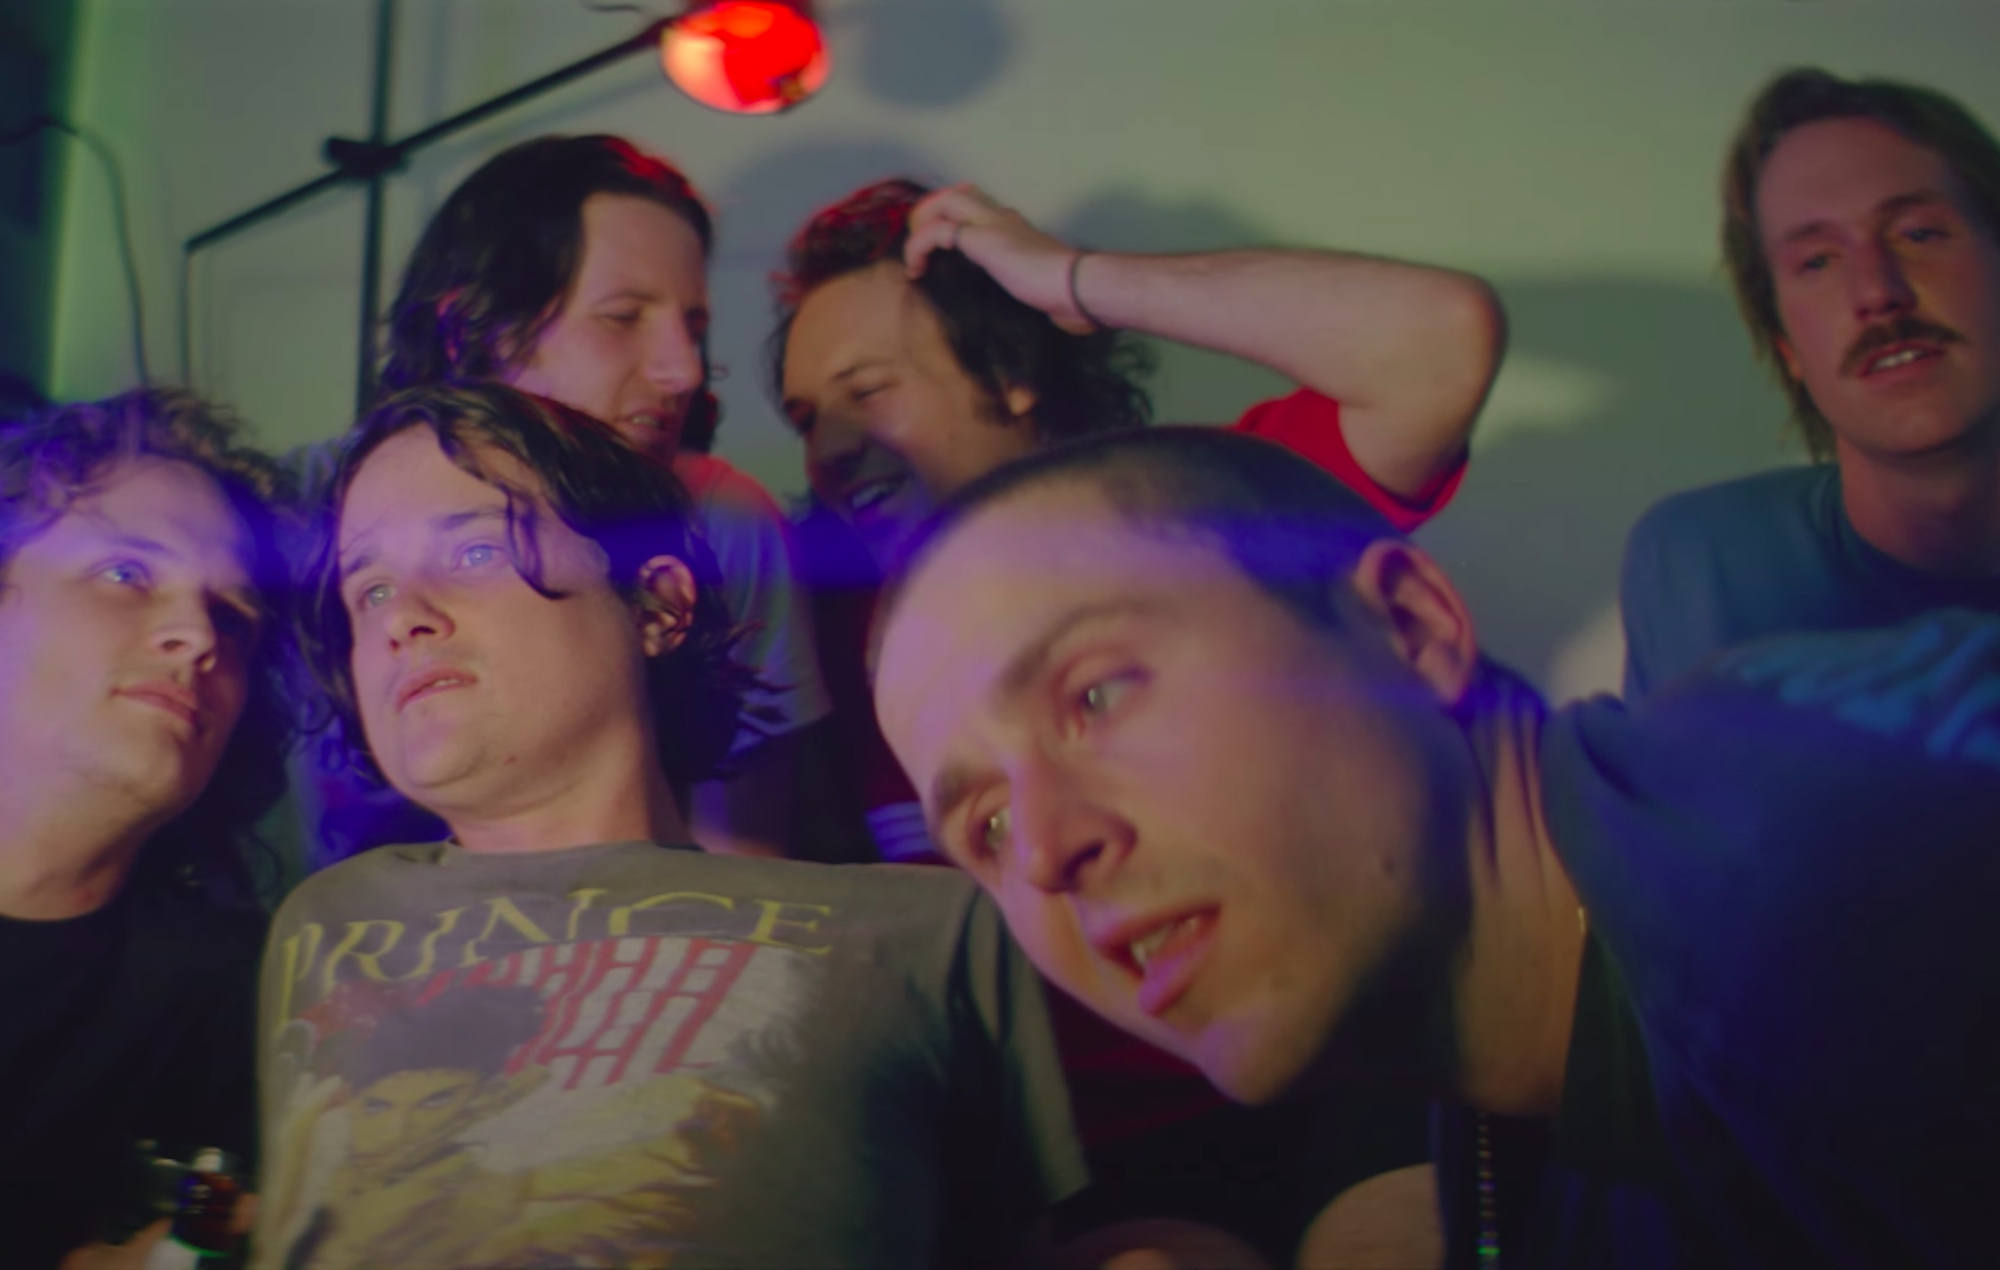 King Gizzard and the Lizard Wizard's 'Intrasport' video